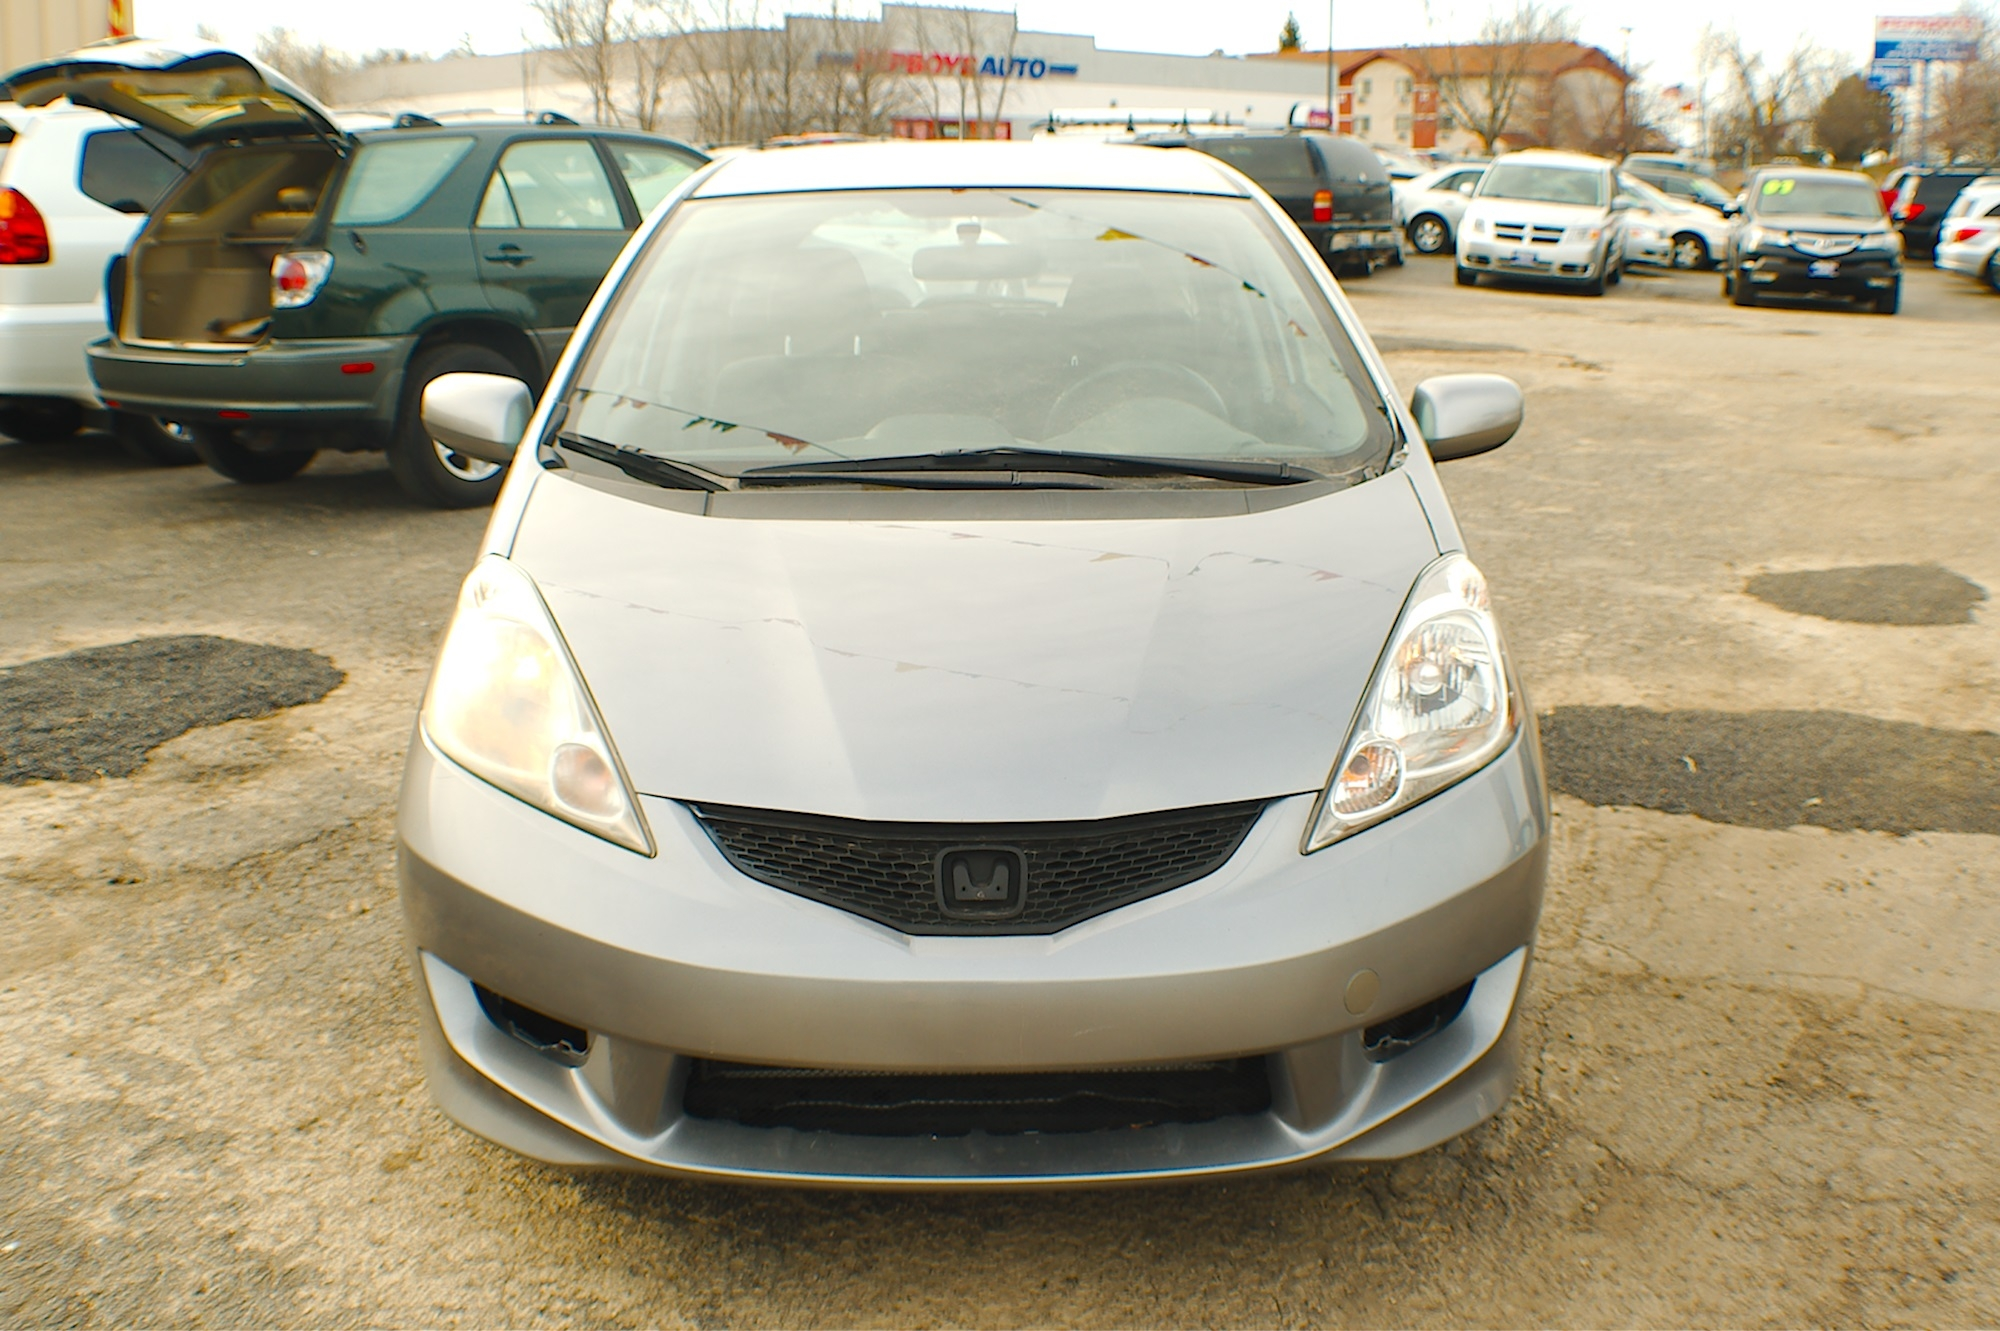 2009 Honda Fit Gray Hatchback Used Car Sale Bannockburn Barrington Beach Park